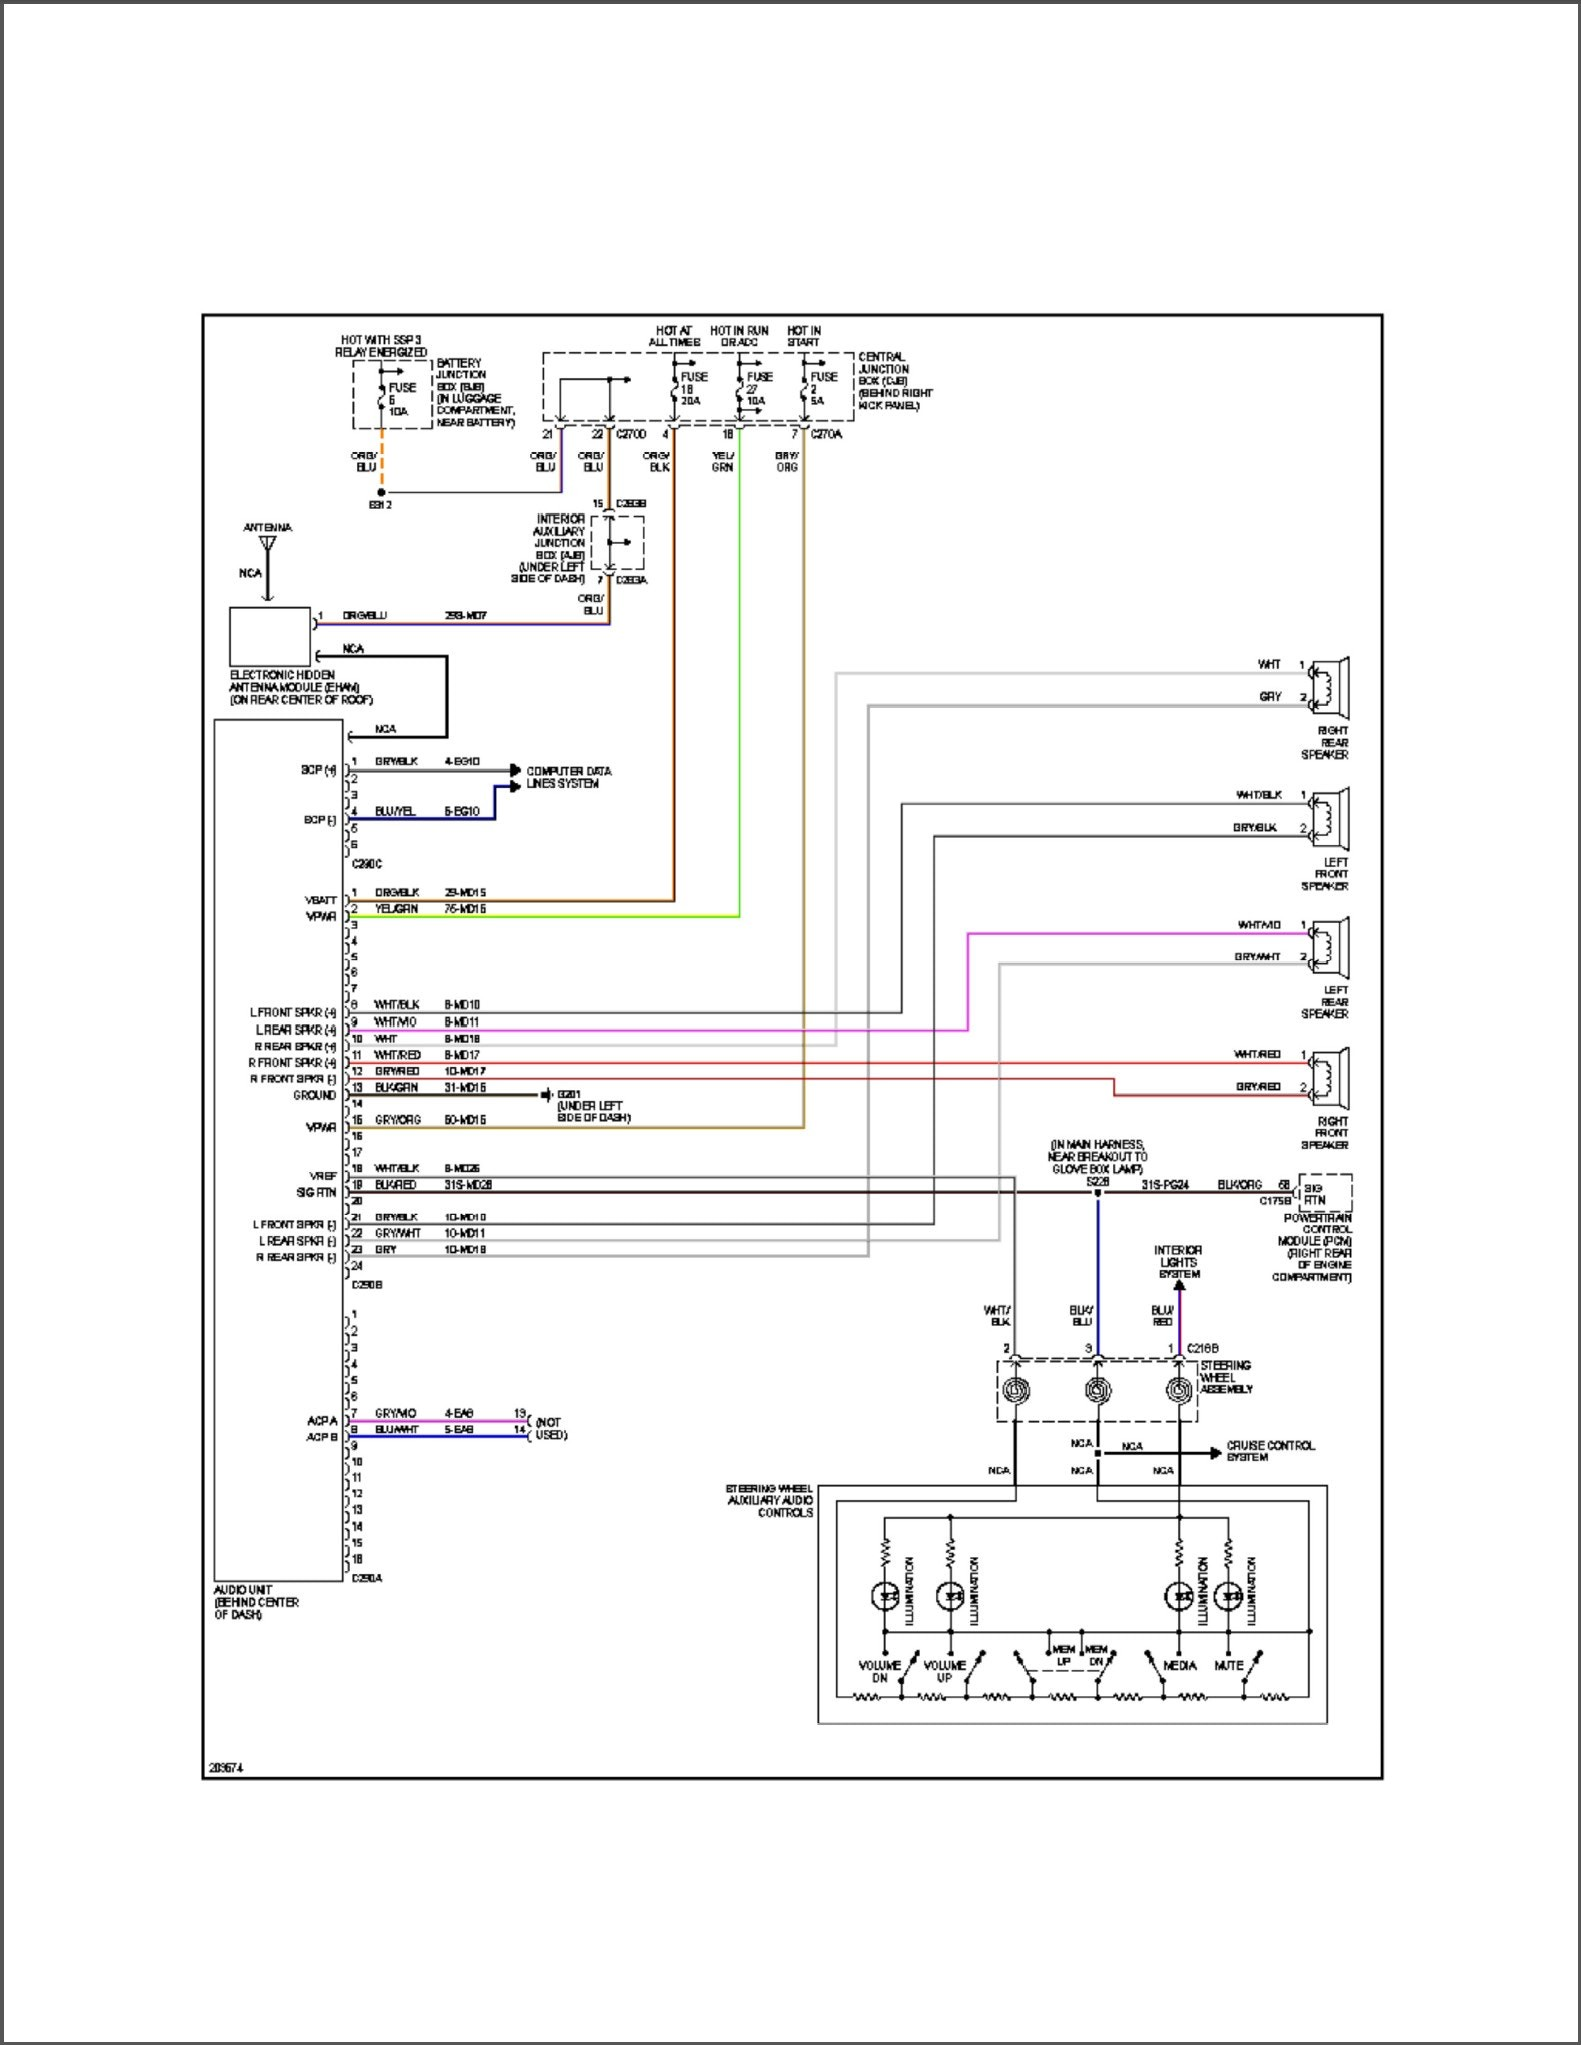 Wiring Diagram For 2000 Lincoln Ls Trusted 2011 Toyota Camry Engine Library